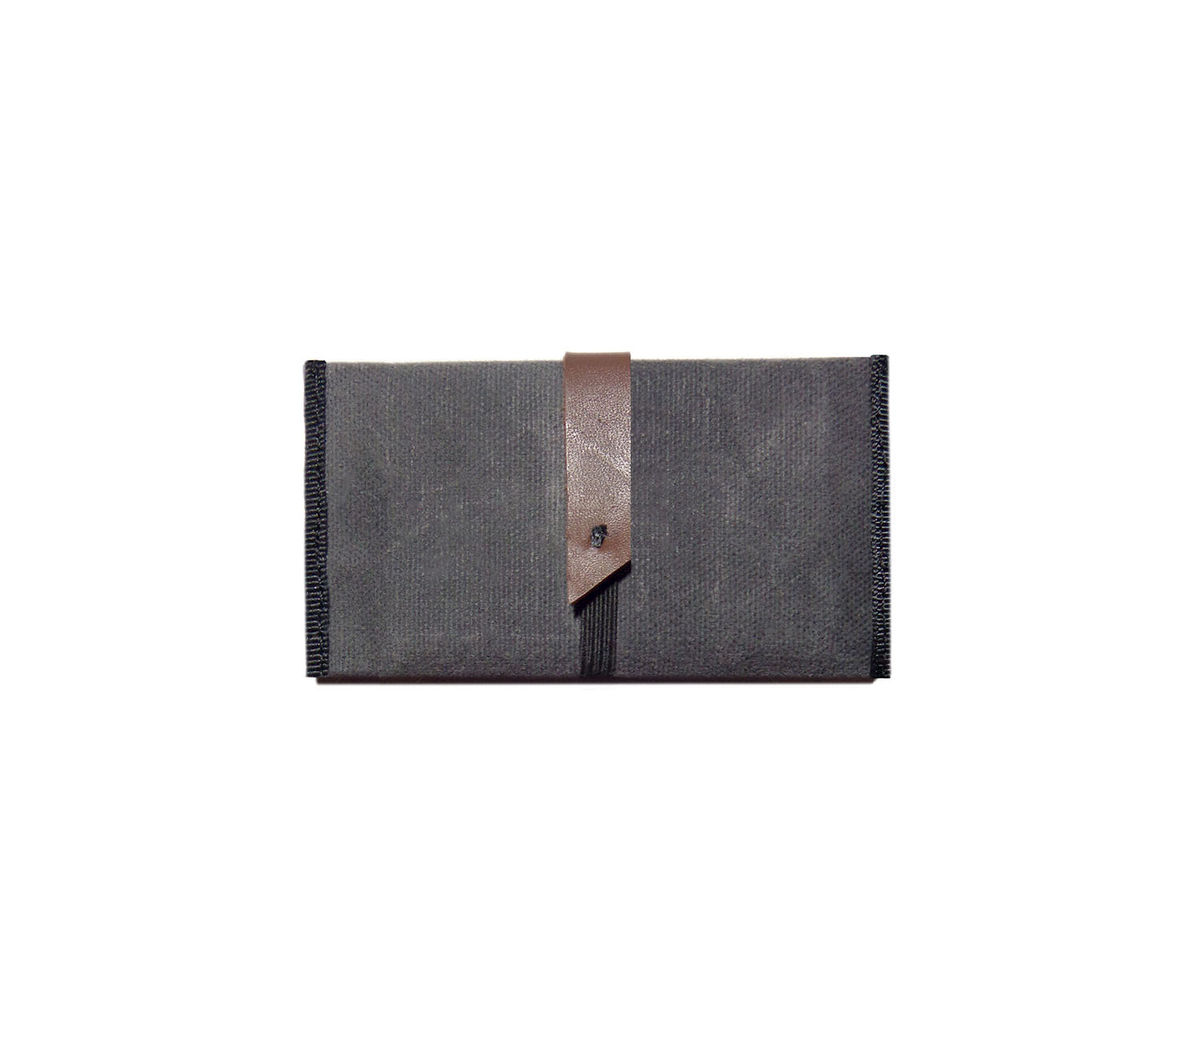 Slim Wallet, RFID Blocker, Waxed Canvas with Leather - product images  of